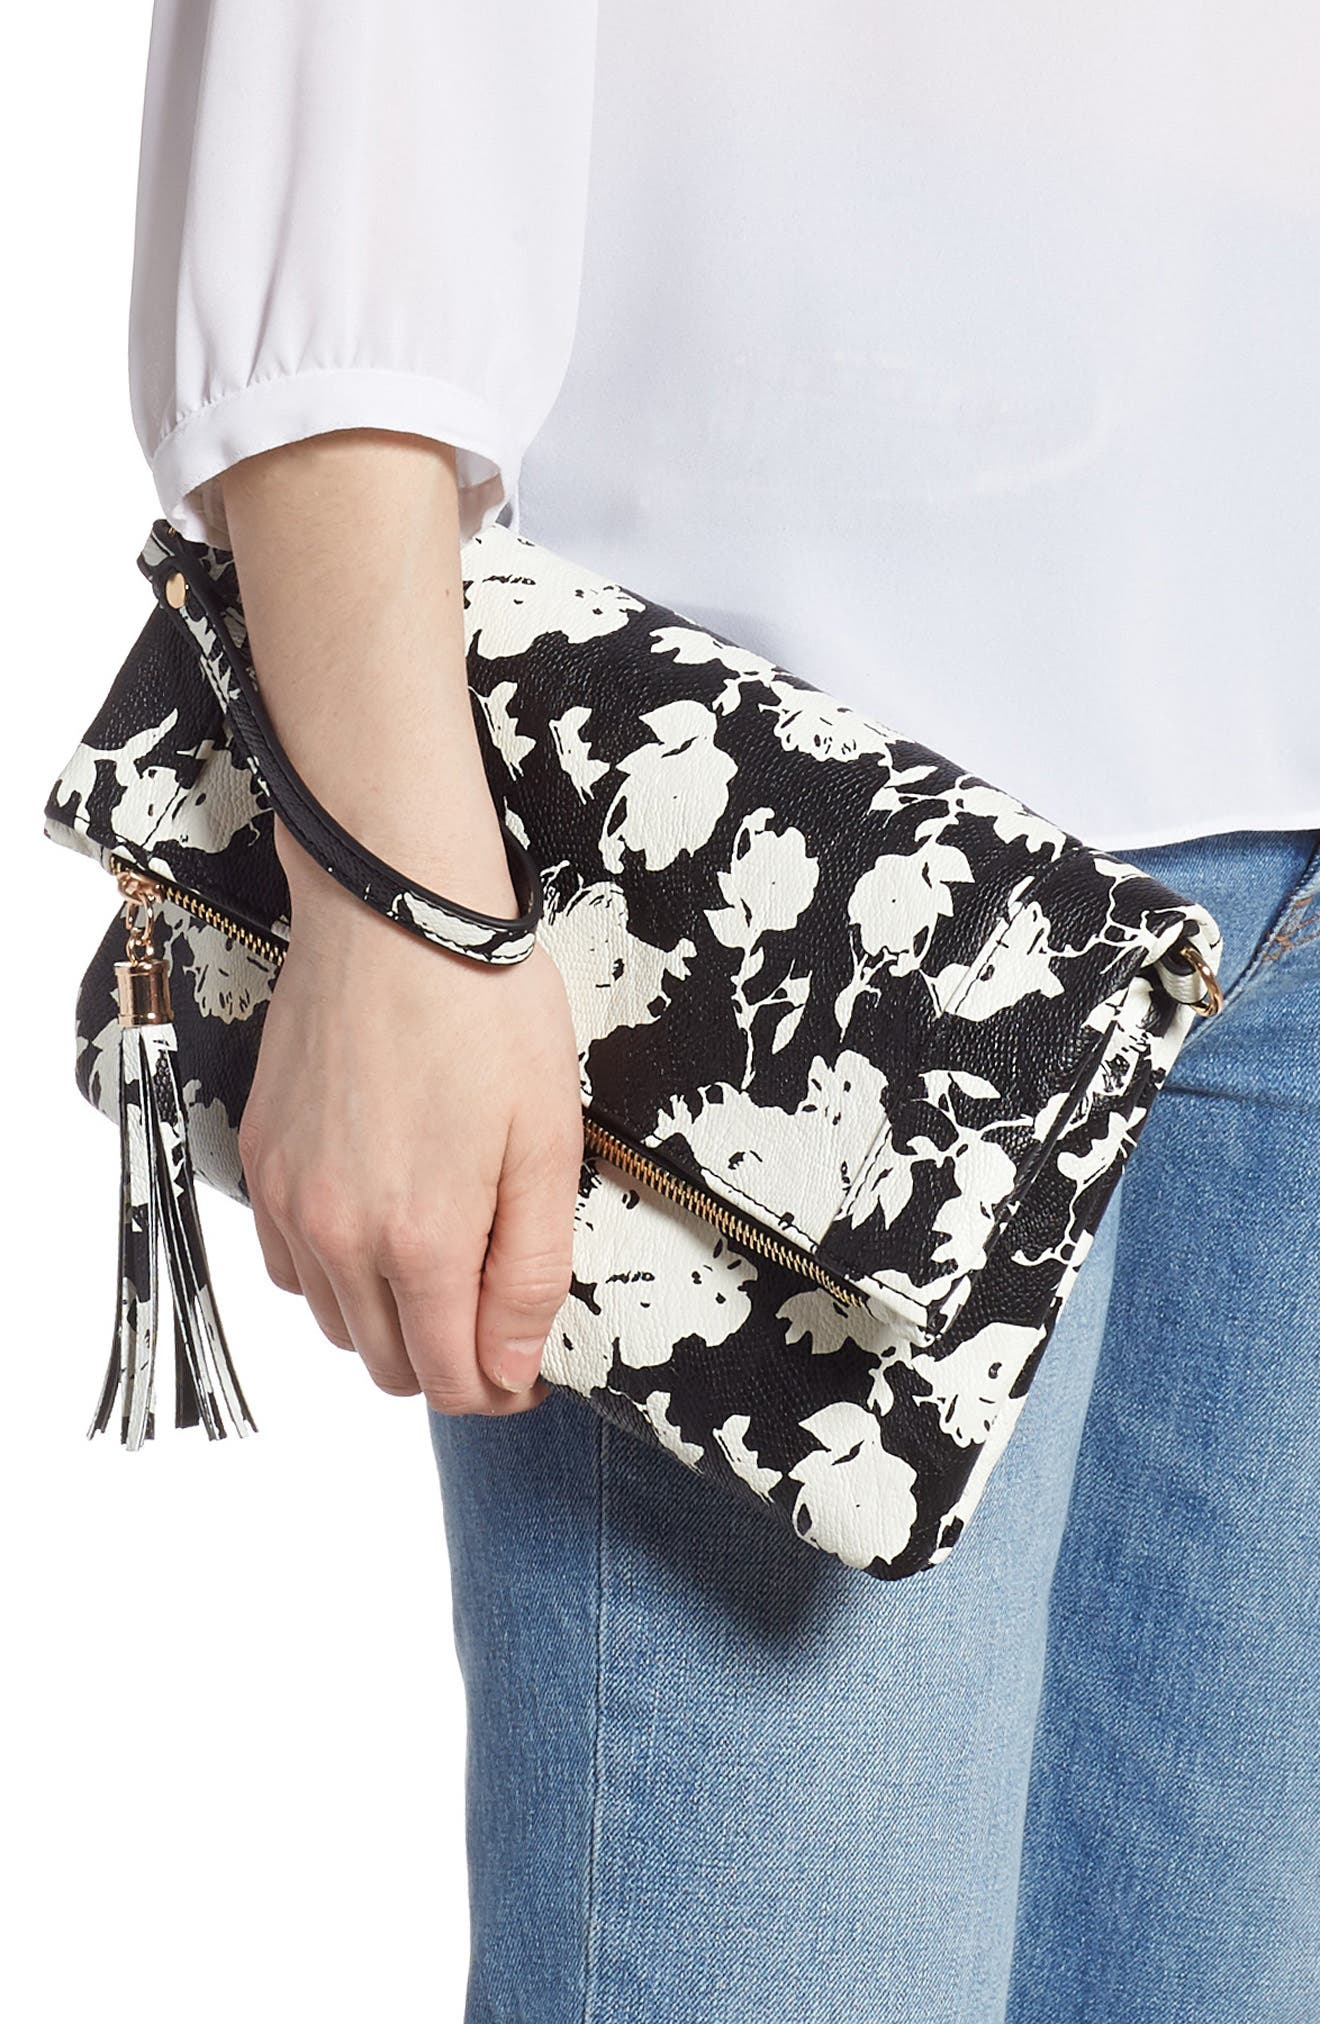 SOLE SOCIETY, 'Tasia' Print Foldover Clutch, Alternate thumbnail 3, color, BLACK FLORAL